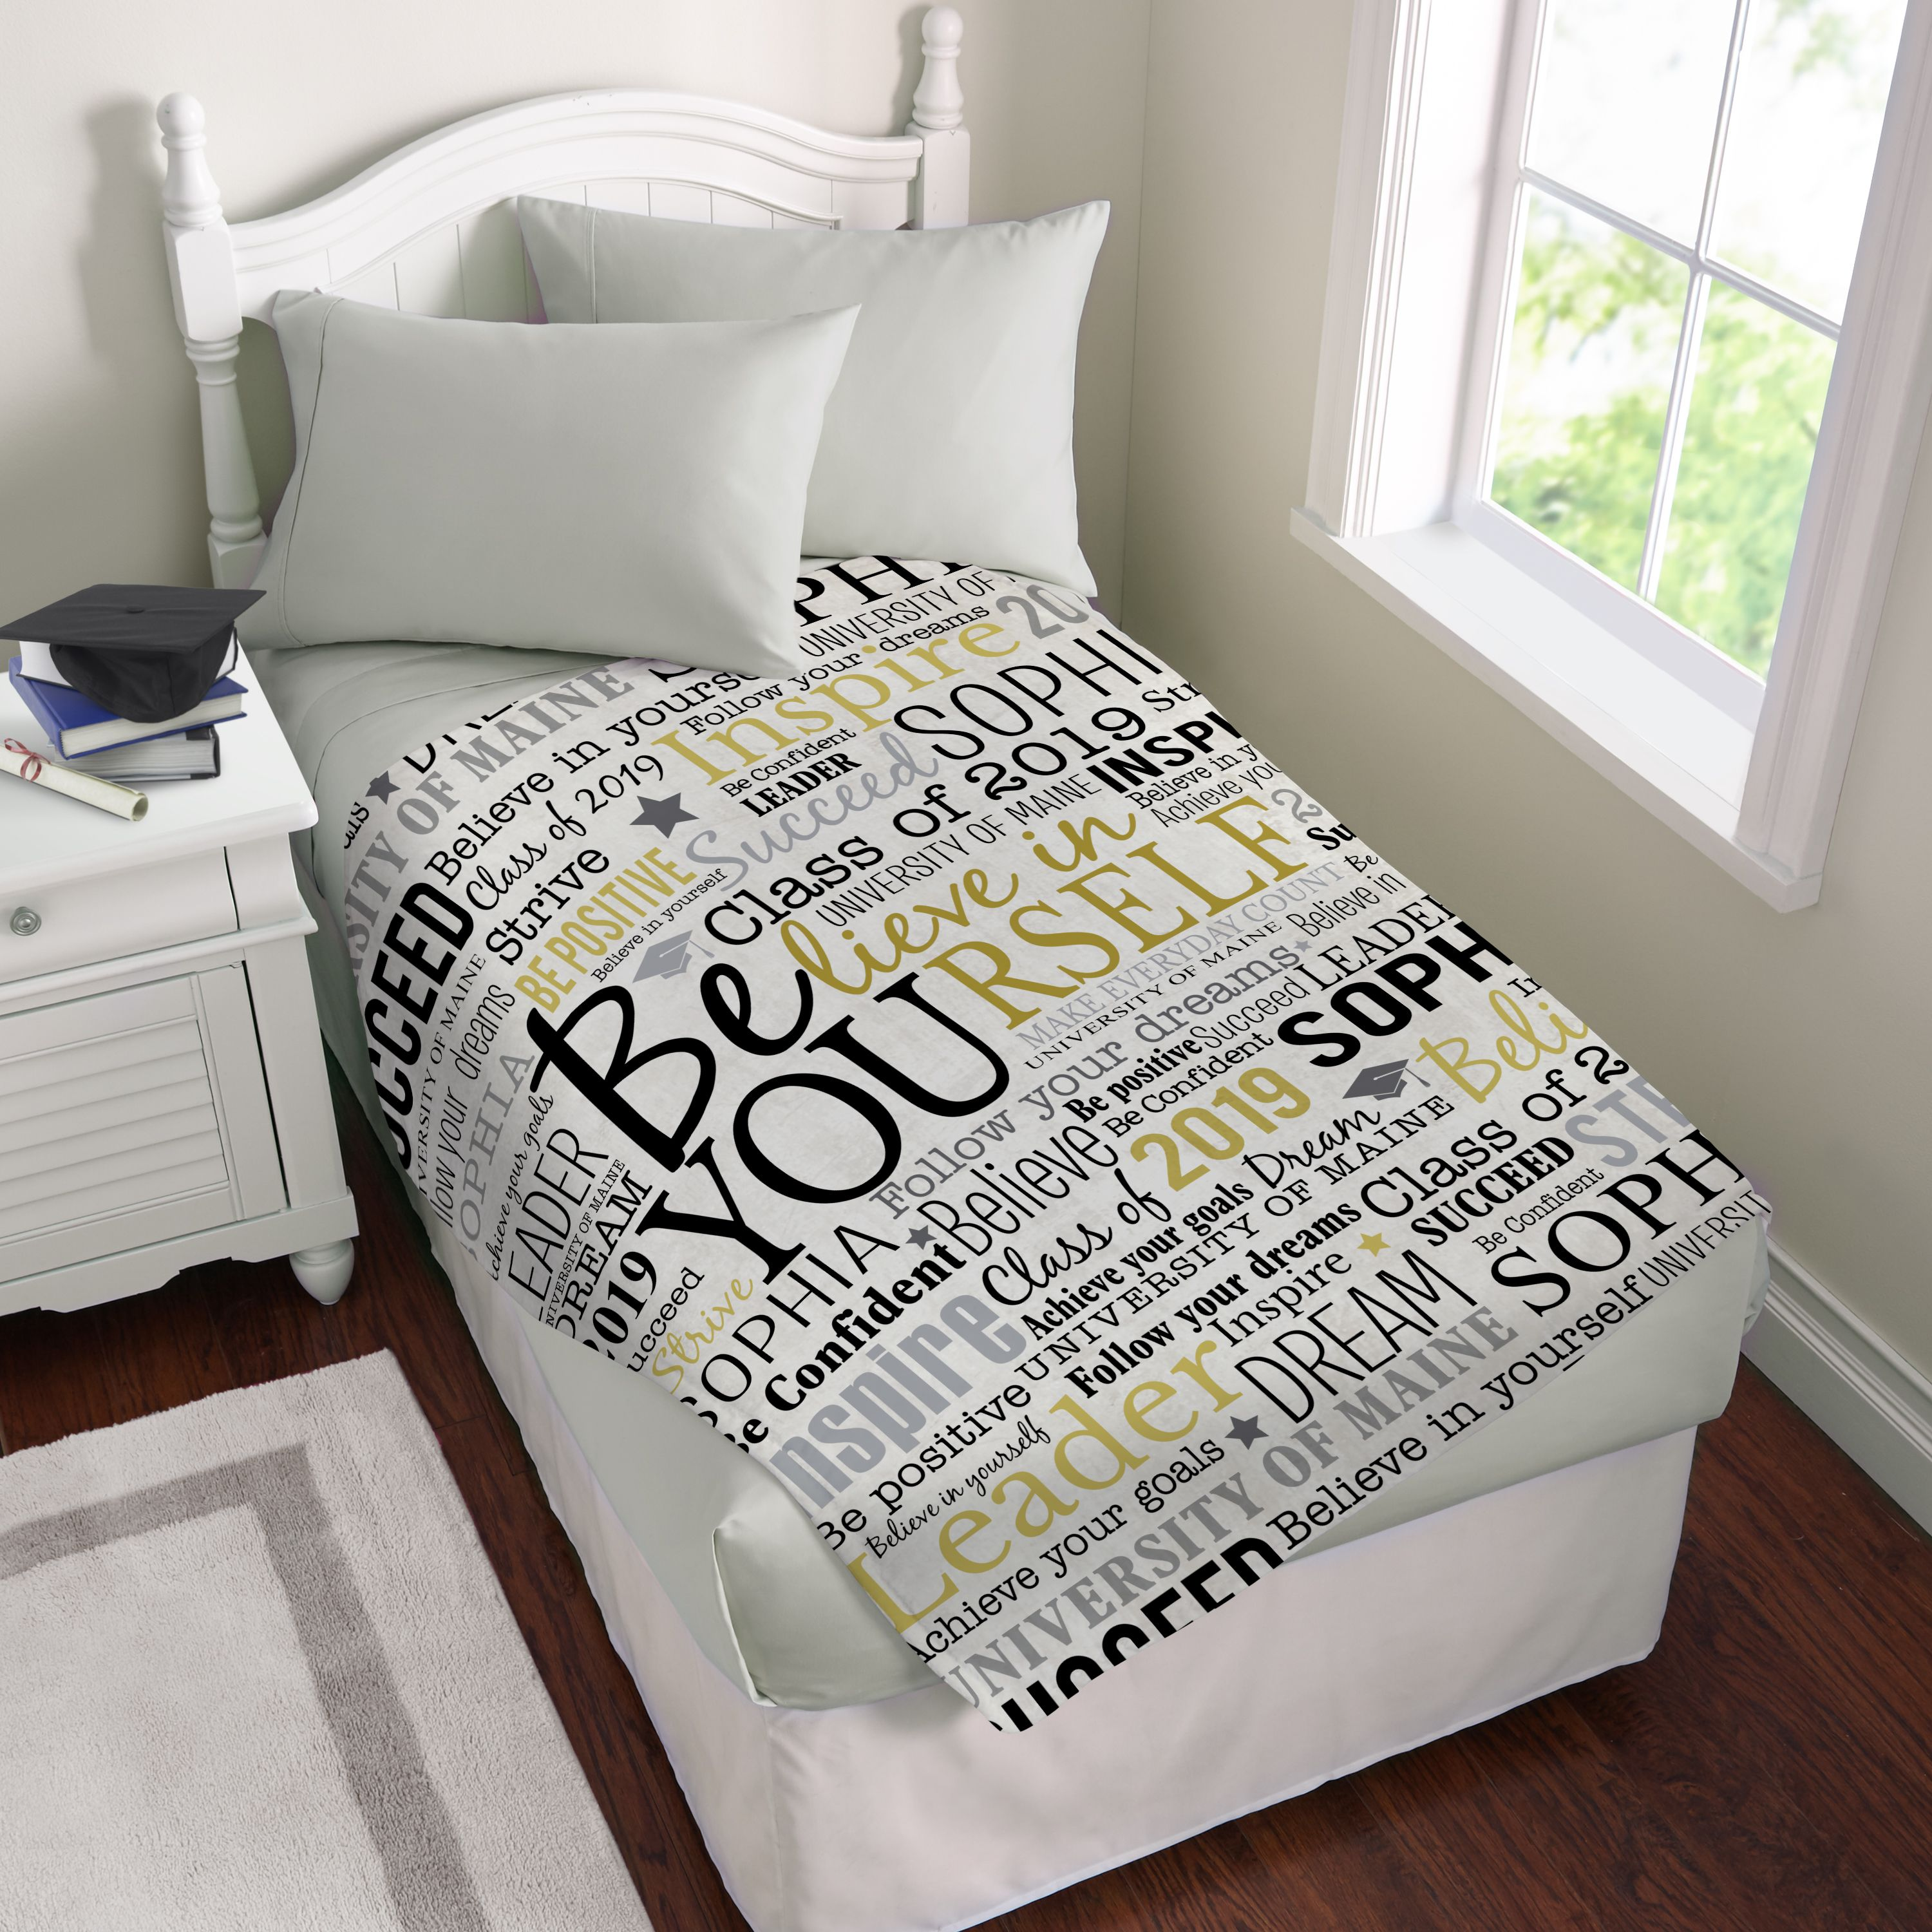 Personalized Believe in Yourself Plush Blanket